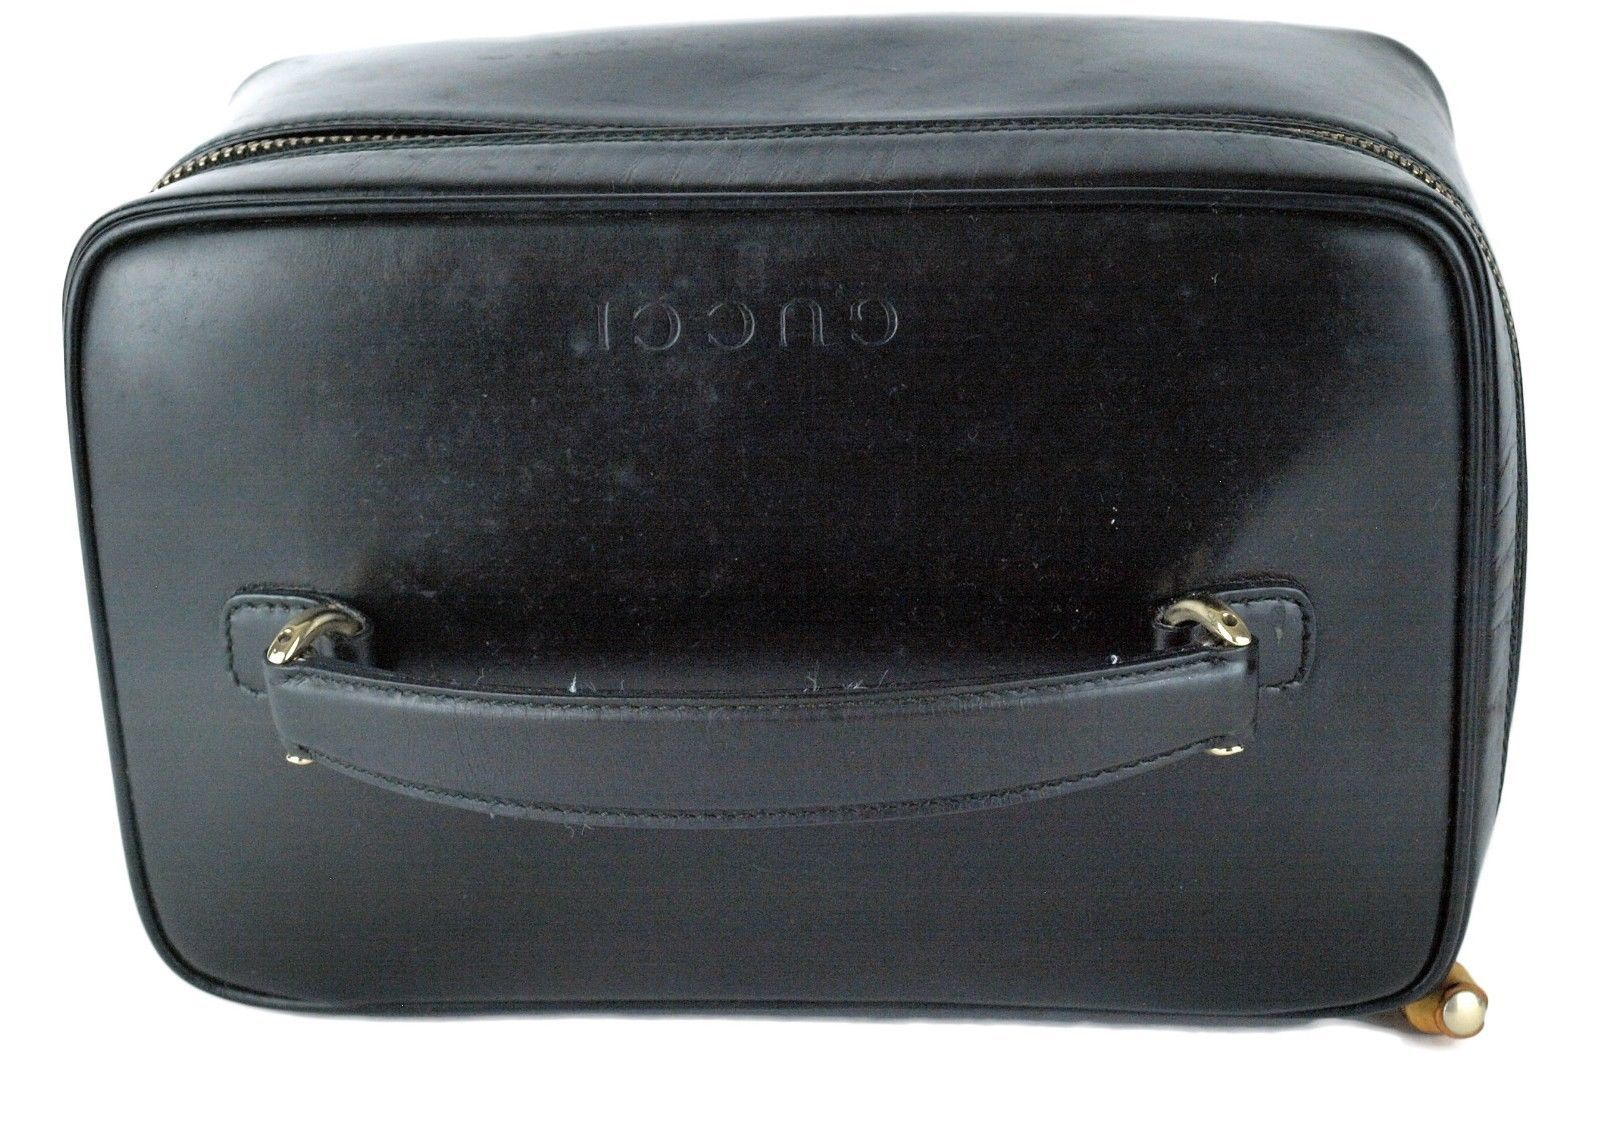 2148cc59f2d ... Auth GUCCI Cosmetic Black Patent Leather Cosmetic Hand Bag Accessories  Pouch ...